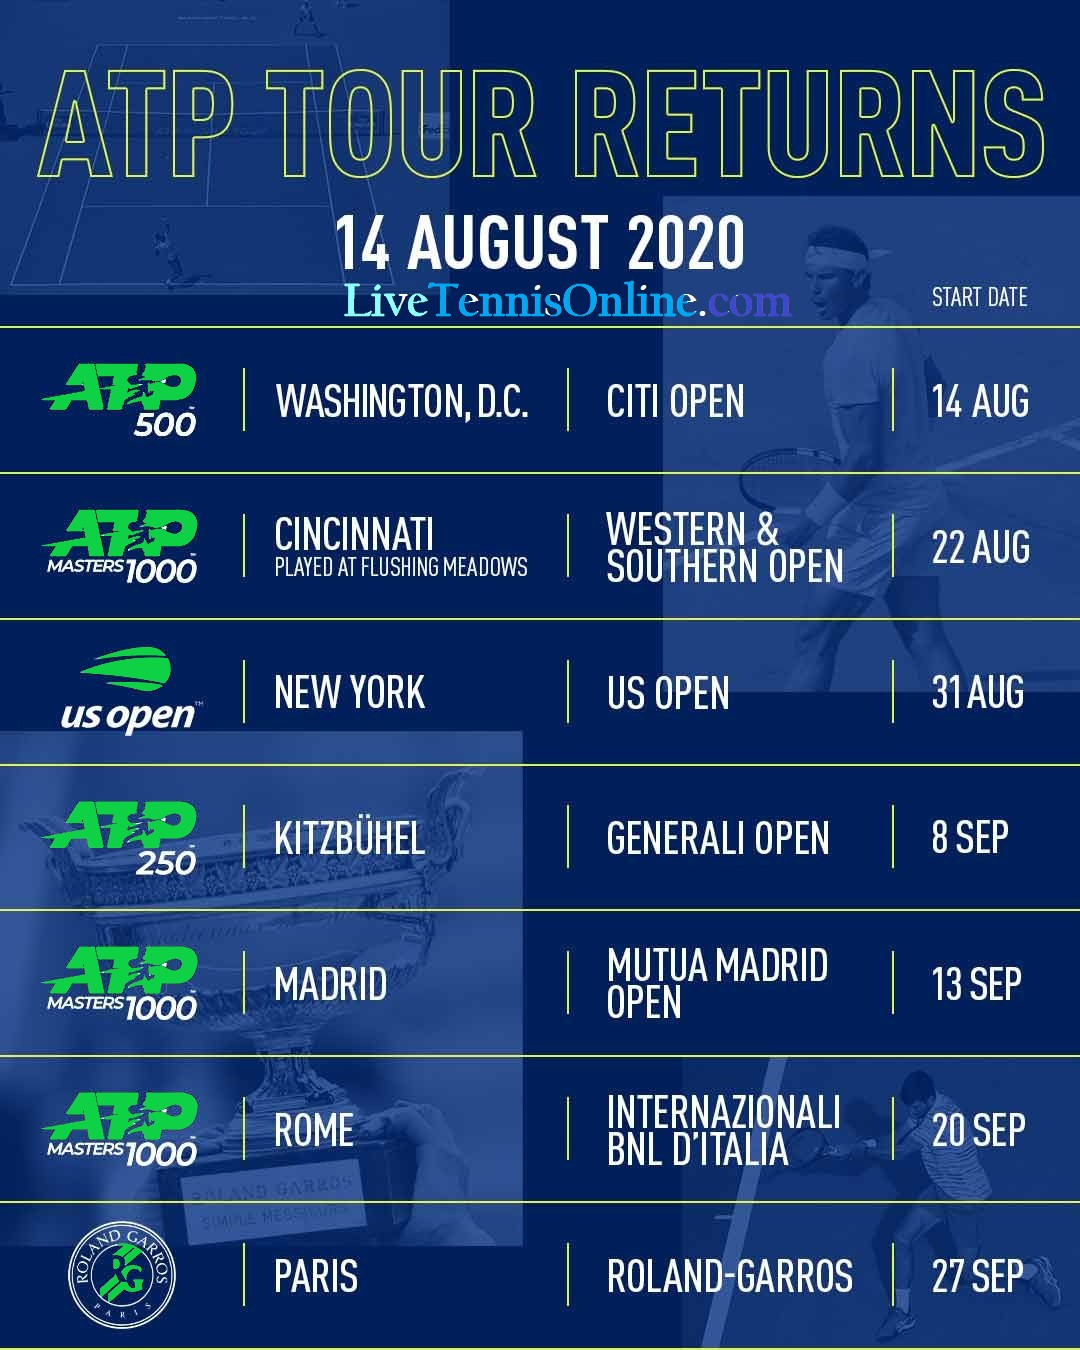 ATP announces Revised Schedule 2020 after Pandemic